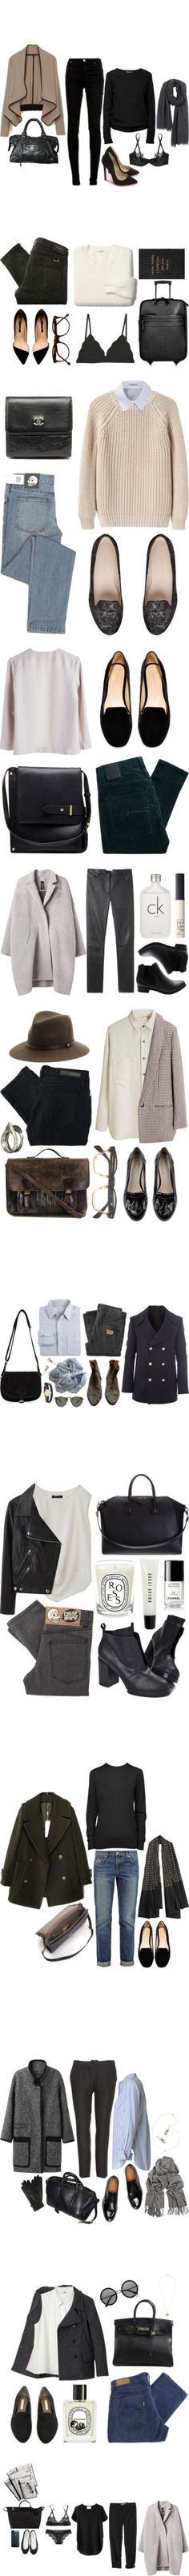 """New York in October"" by katie-marieferguson ❤ liked on Polyvore"